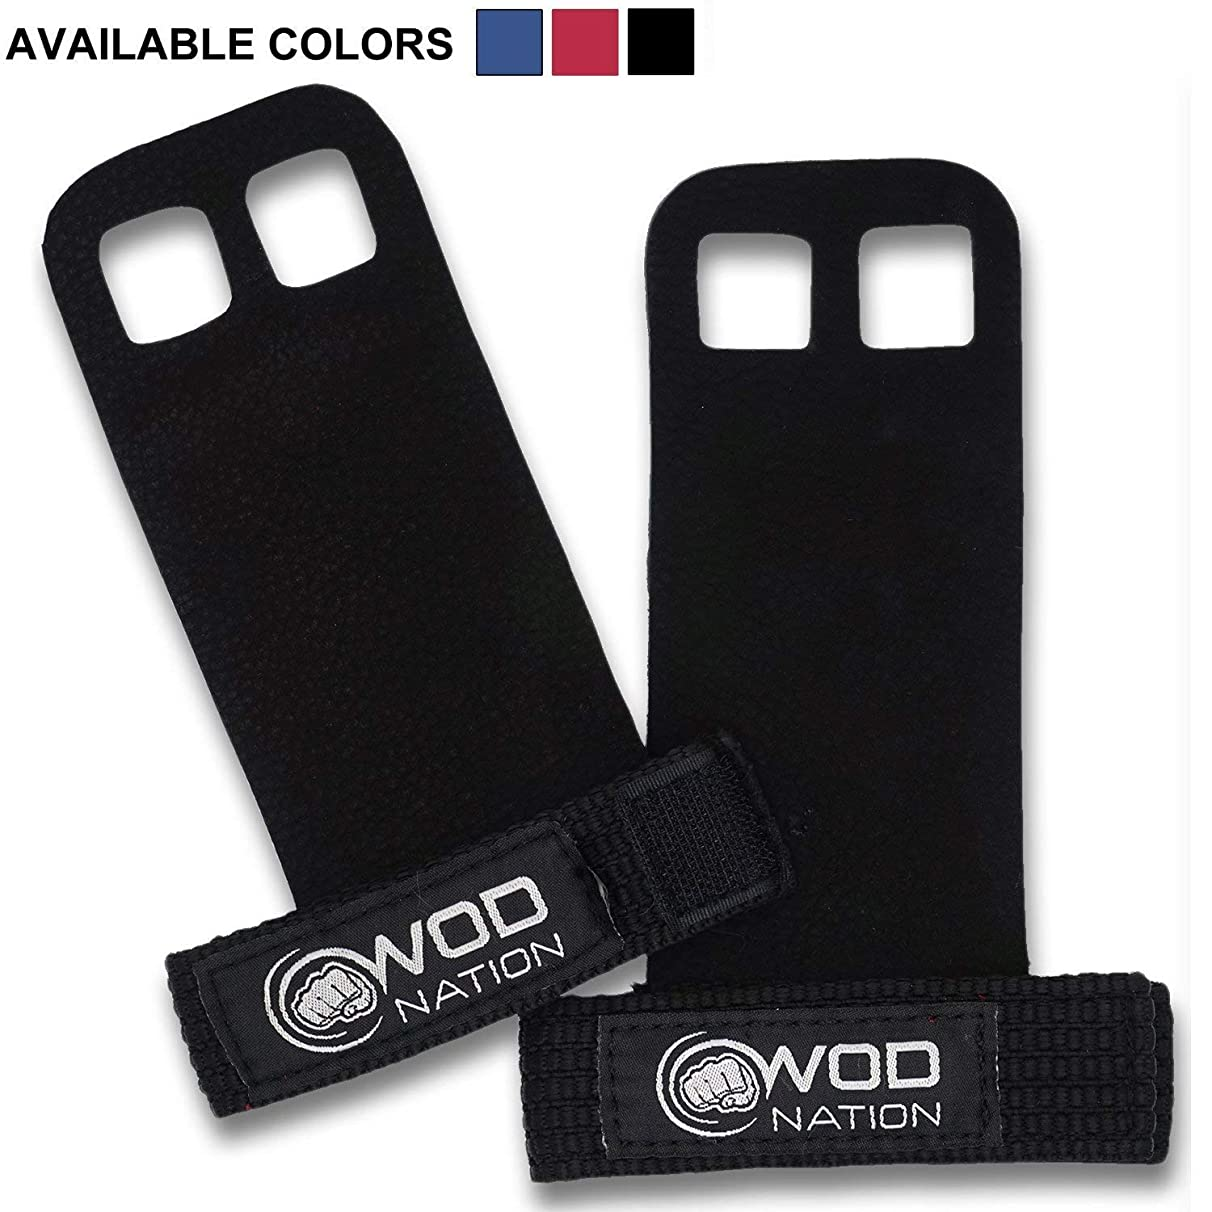 WOD Nation Leather Barbell Gymnastics Grips Perfect for Pull-up Training, Kettlebells, Gymnastic Rings